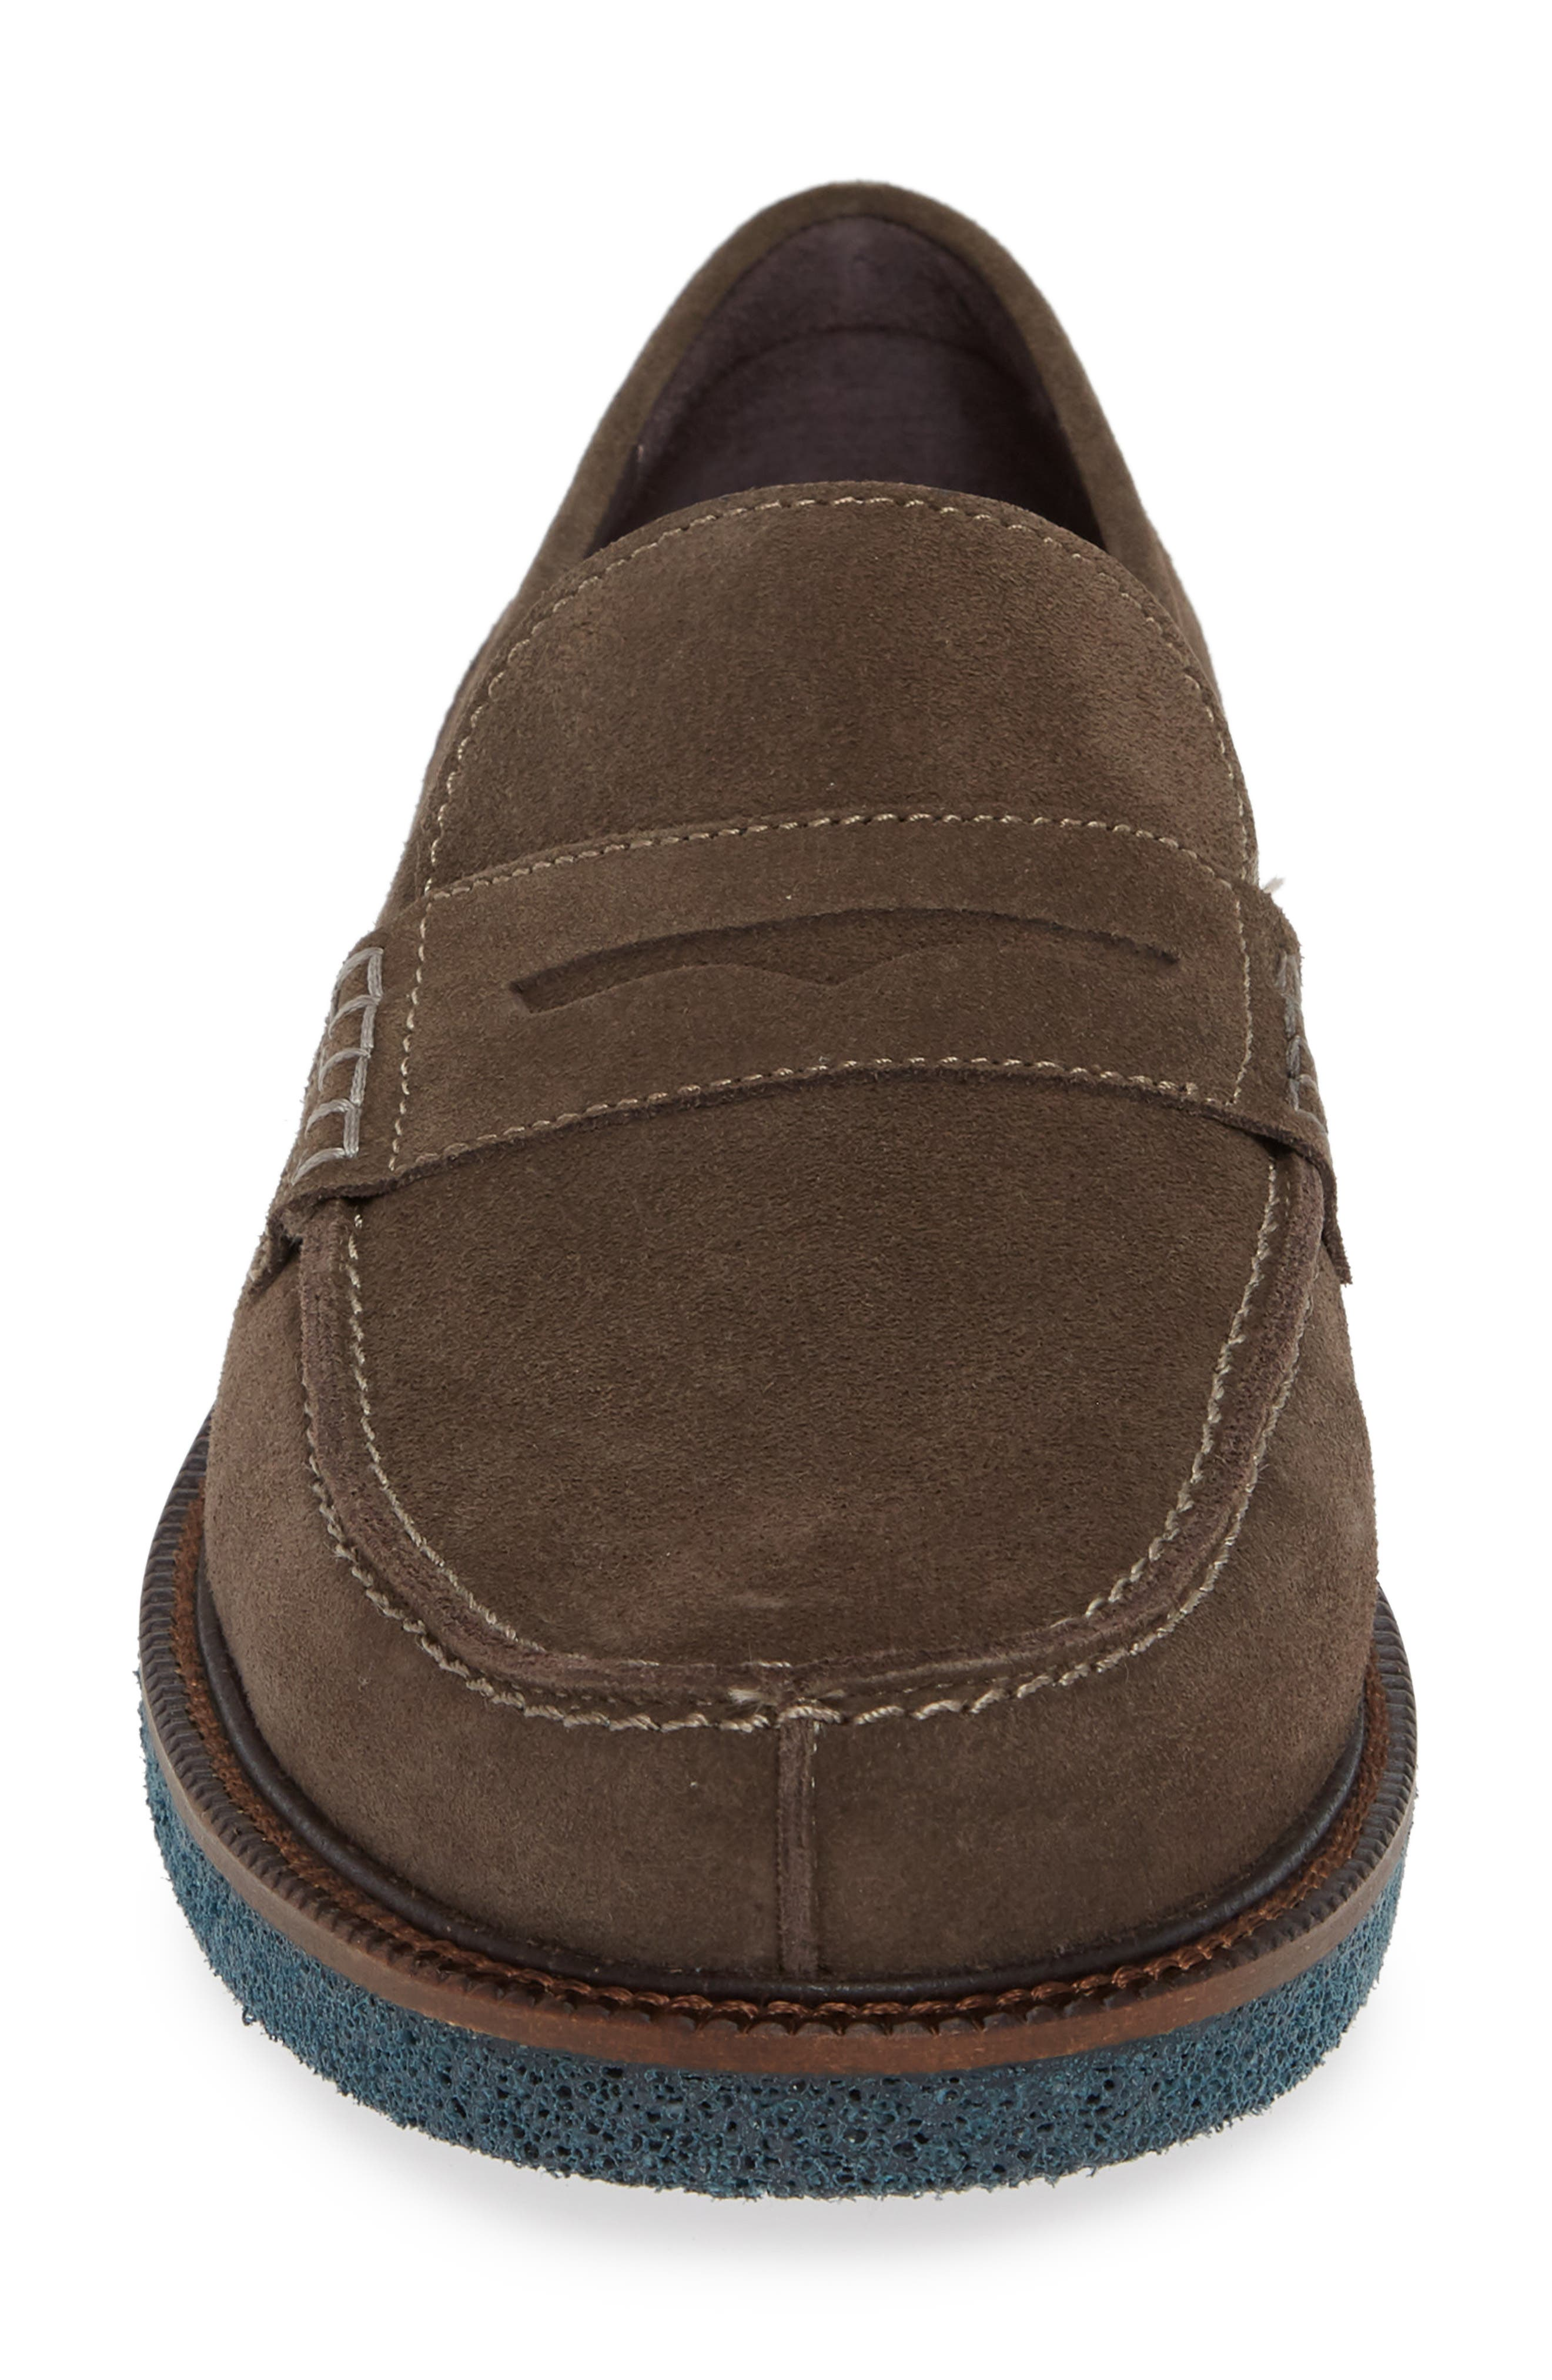 Landry Penny Loafer,                             Alternate thumbnail 4, color,                             GREY SUEDE